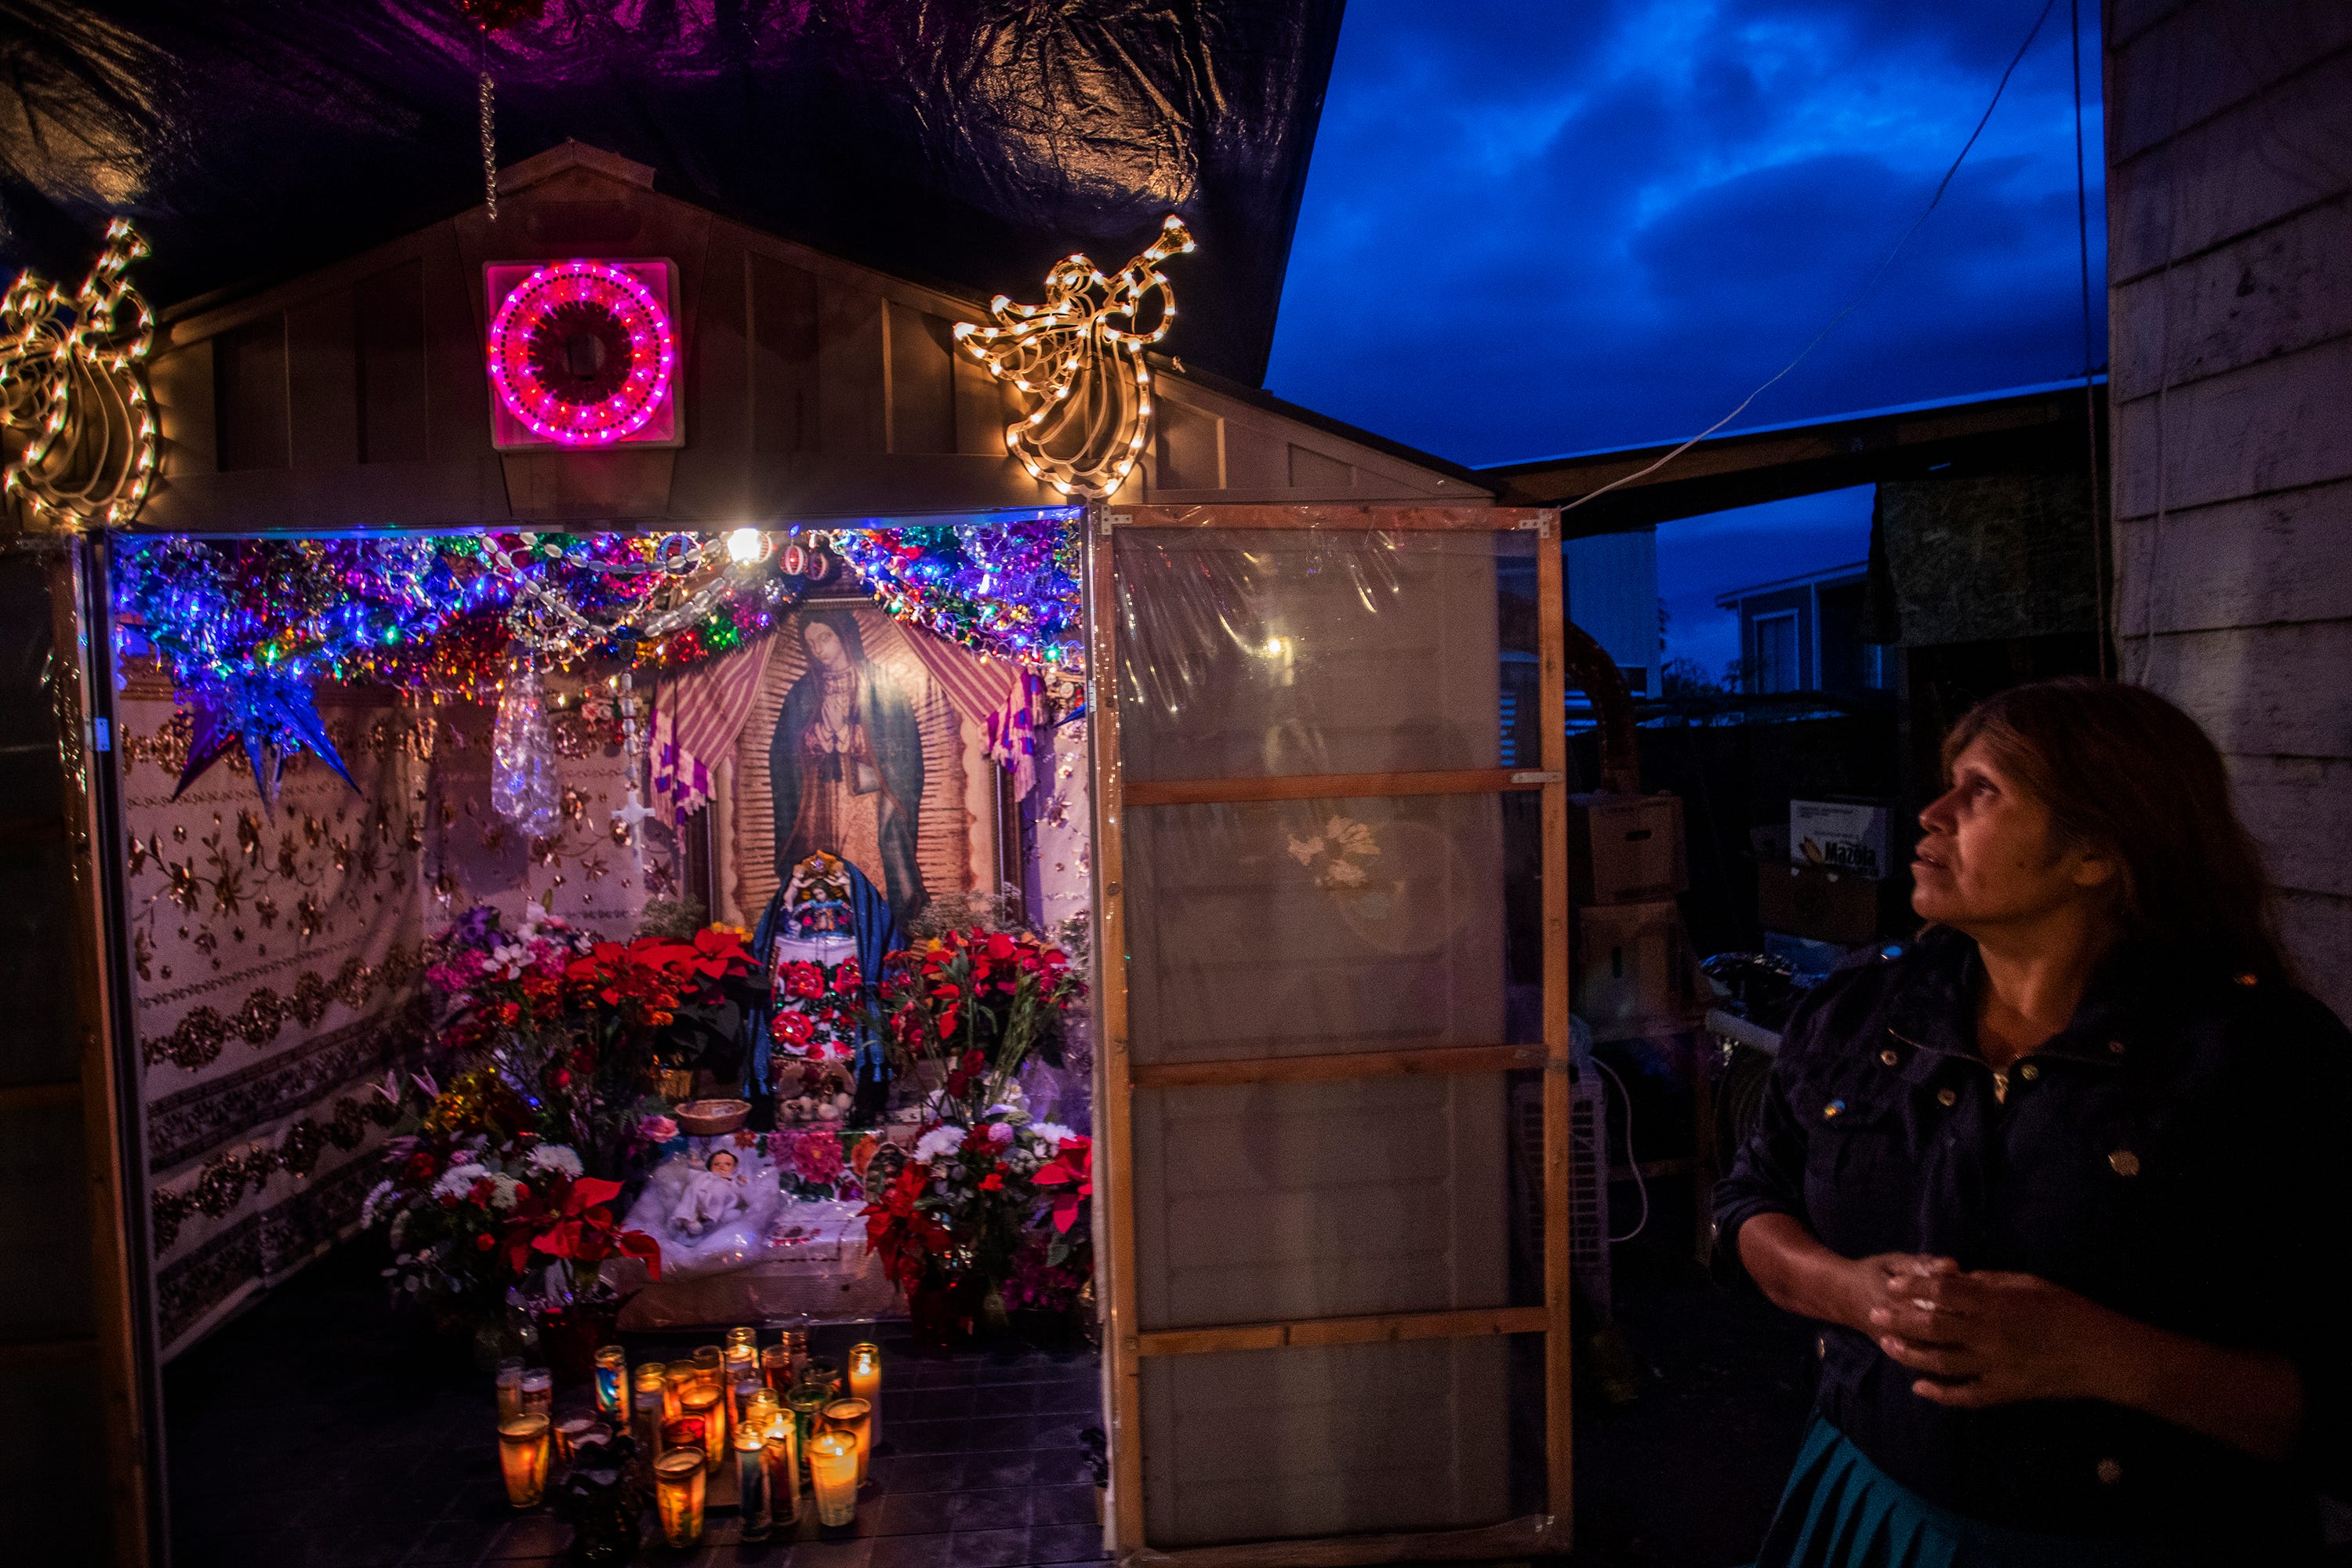 Maria Elias takes a moment to say a prayer to the Virgin of Guadalupe. The altar has been at her home for a year after she and her husband were selected as godparents by her Purépecha community, an honor bestowed every year on one of the families of the Purepecha in the Coachella Valley.